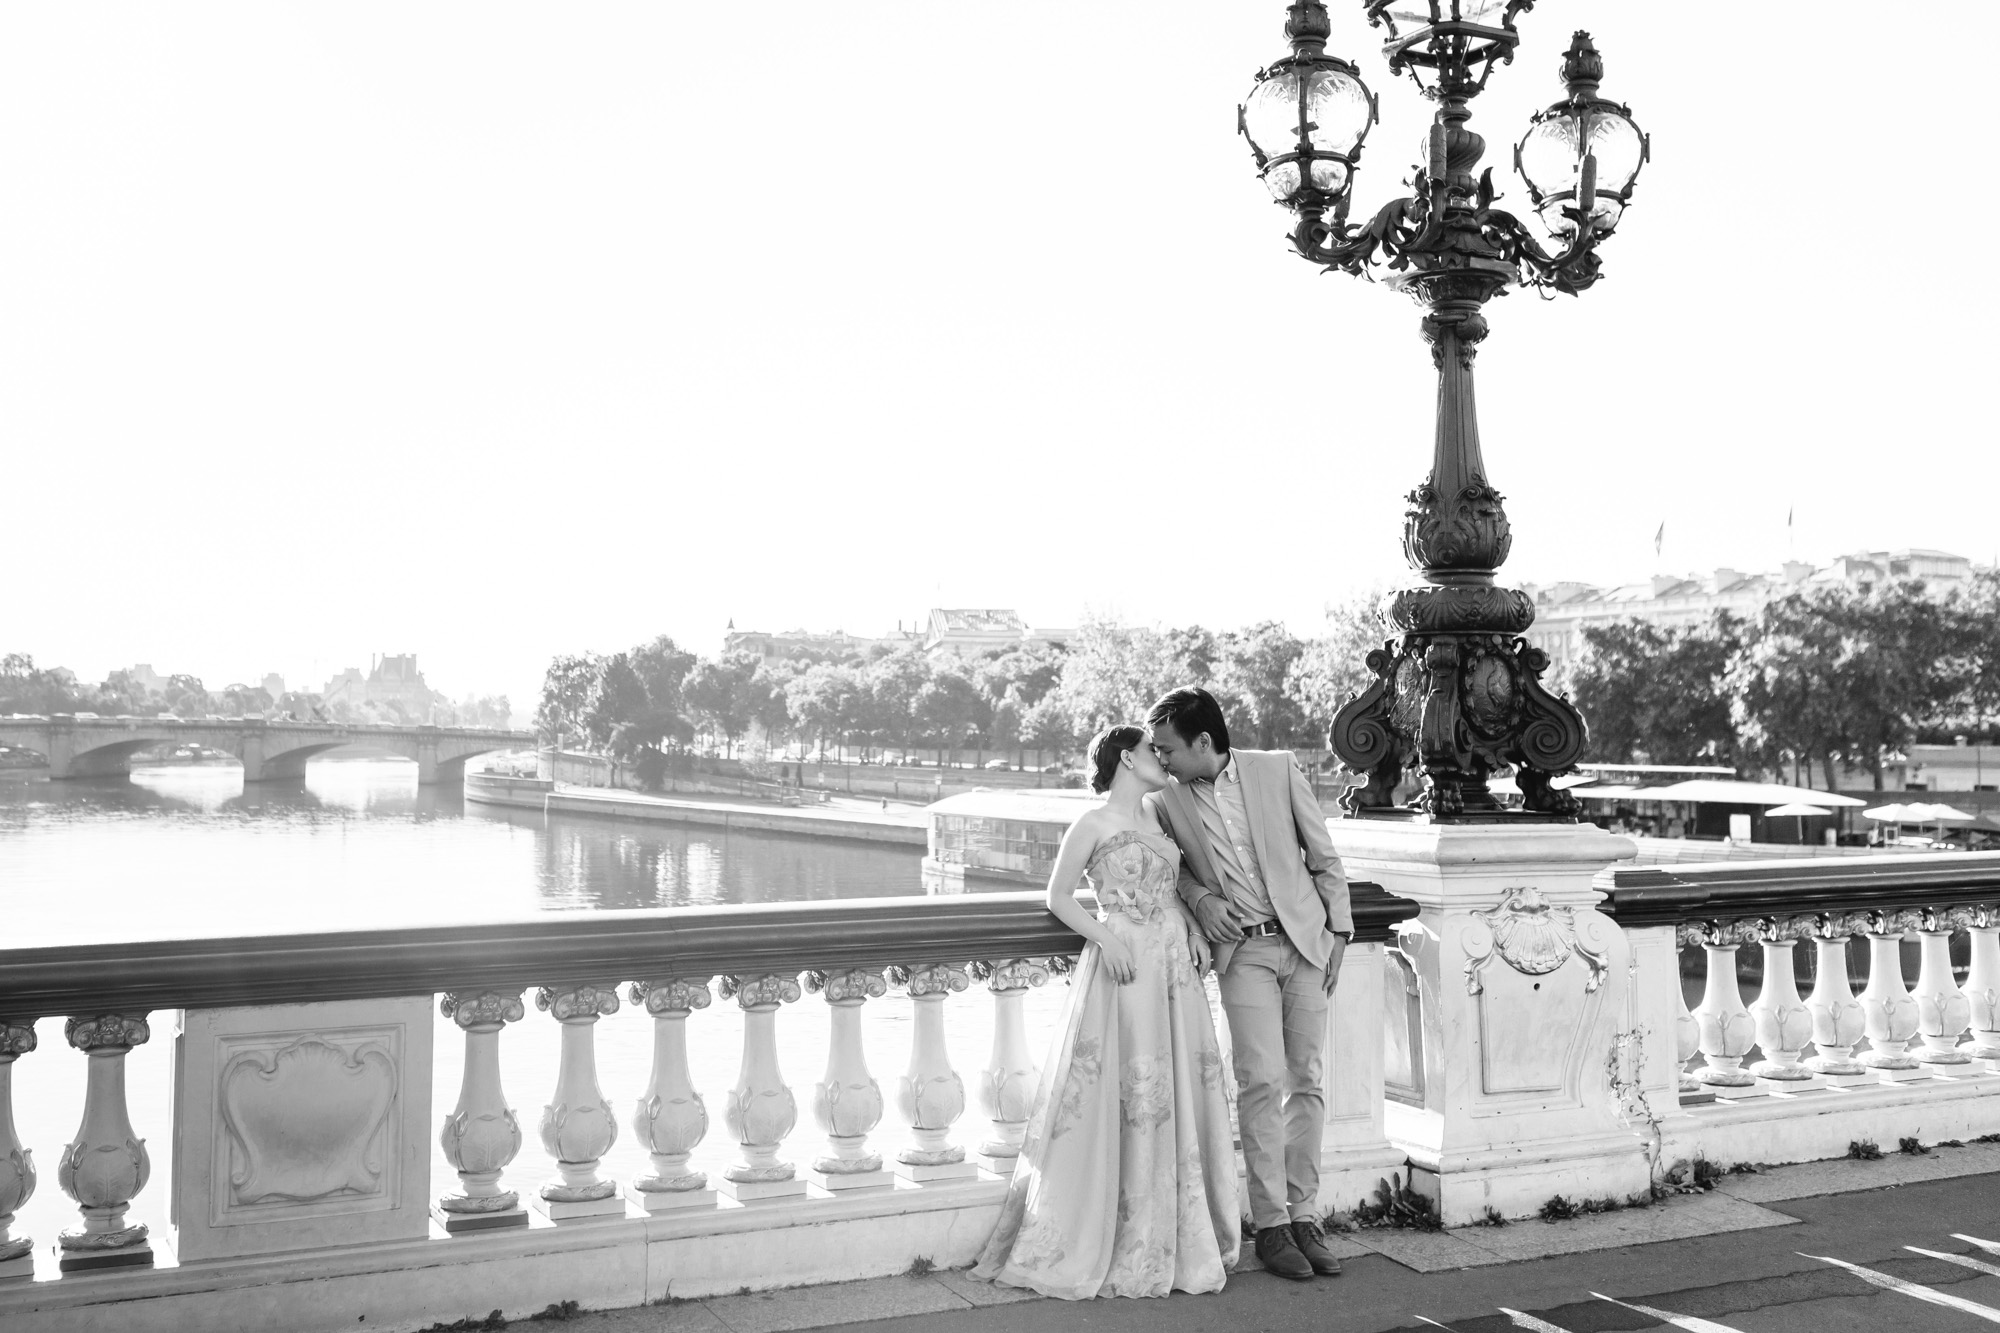 Pre-wedding black and white couple portrait photo session at Alexandre III bridge captured by Paris Photographer Federico Guendel